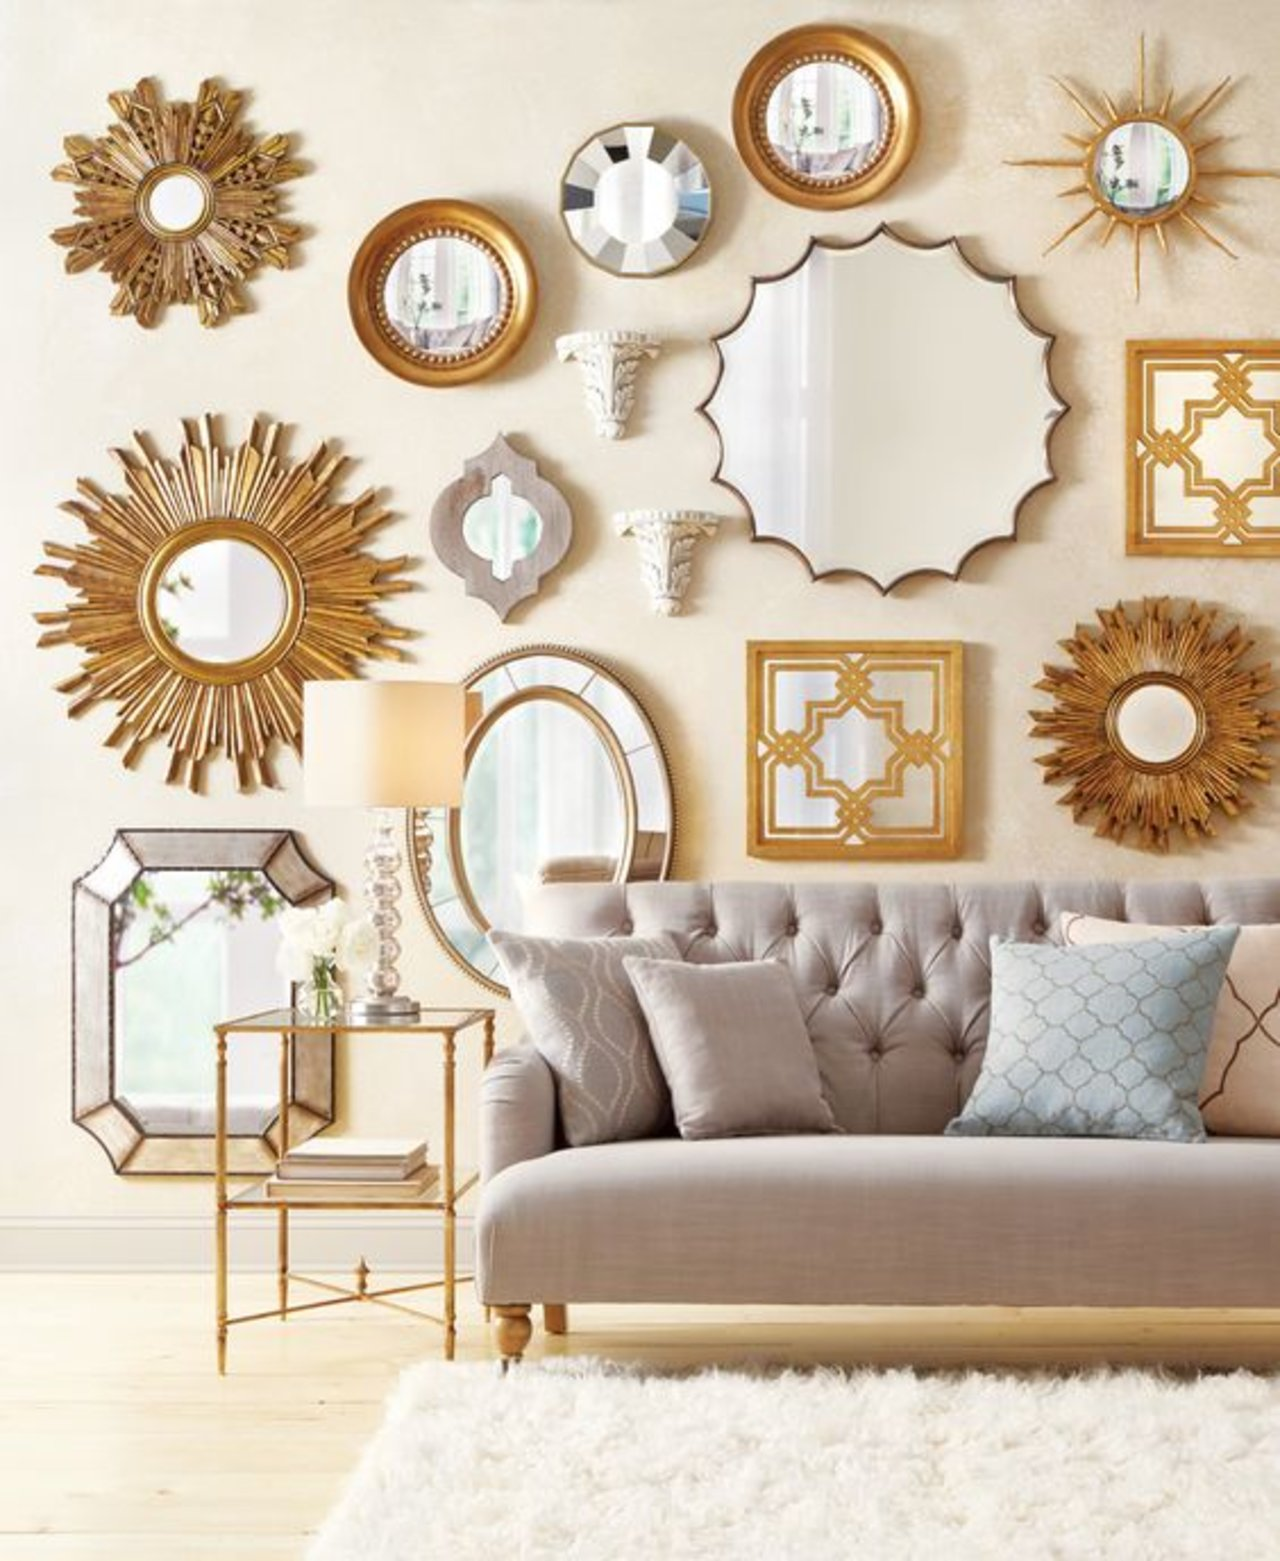 Wall Decor 10 Best Mirror Decorating Ideas For Your Room Maximize Your Living Room 39 S Style